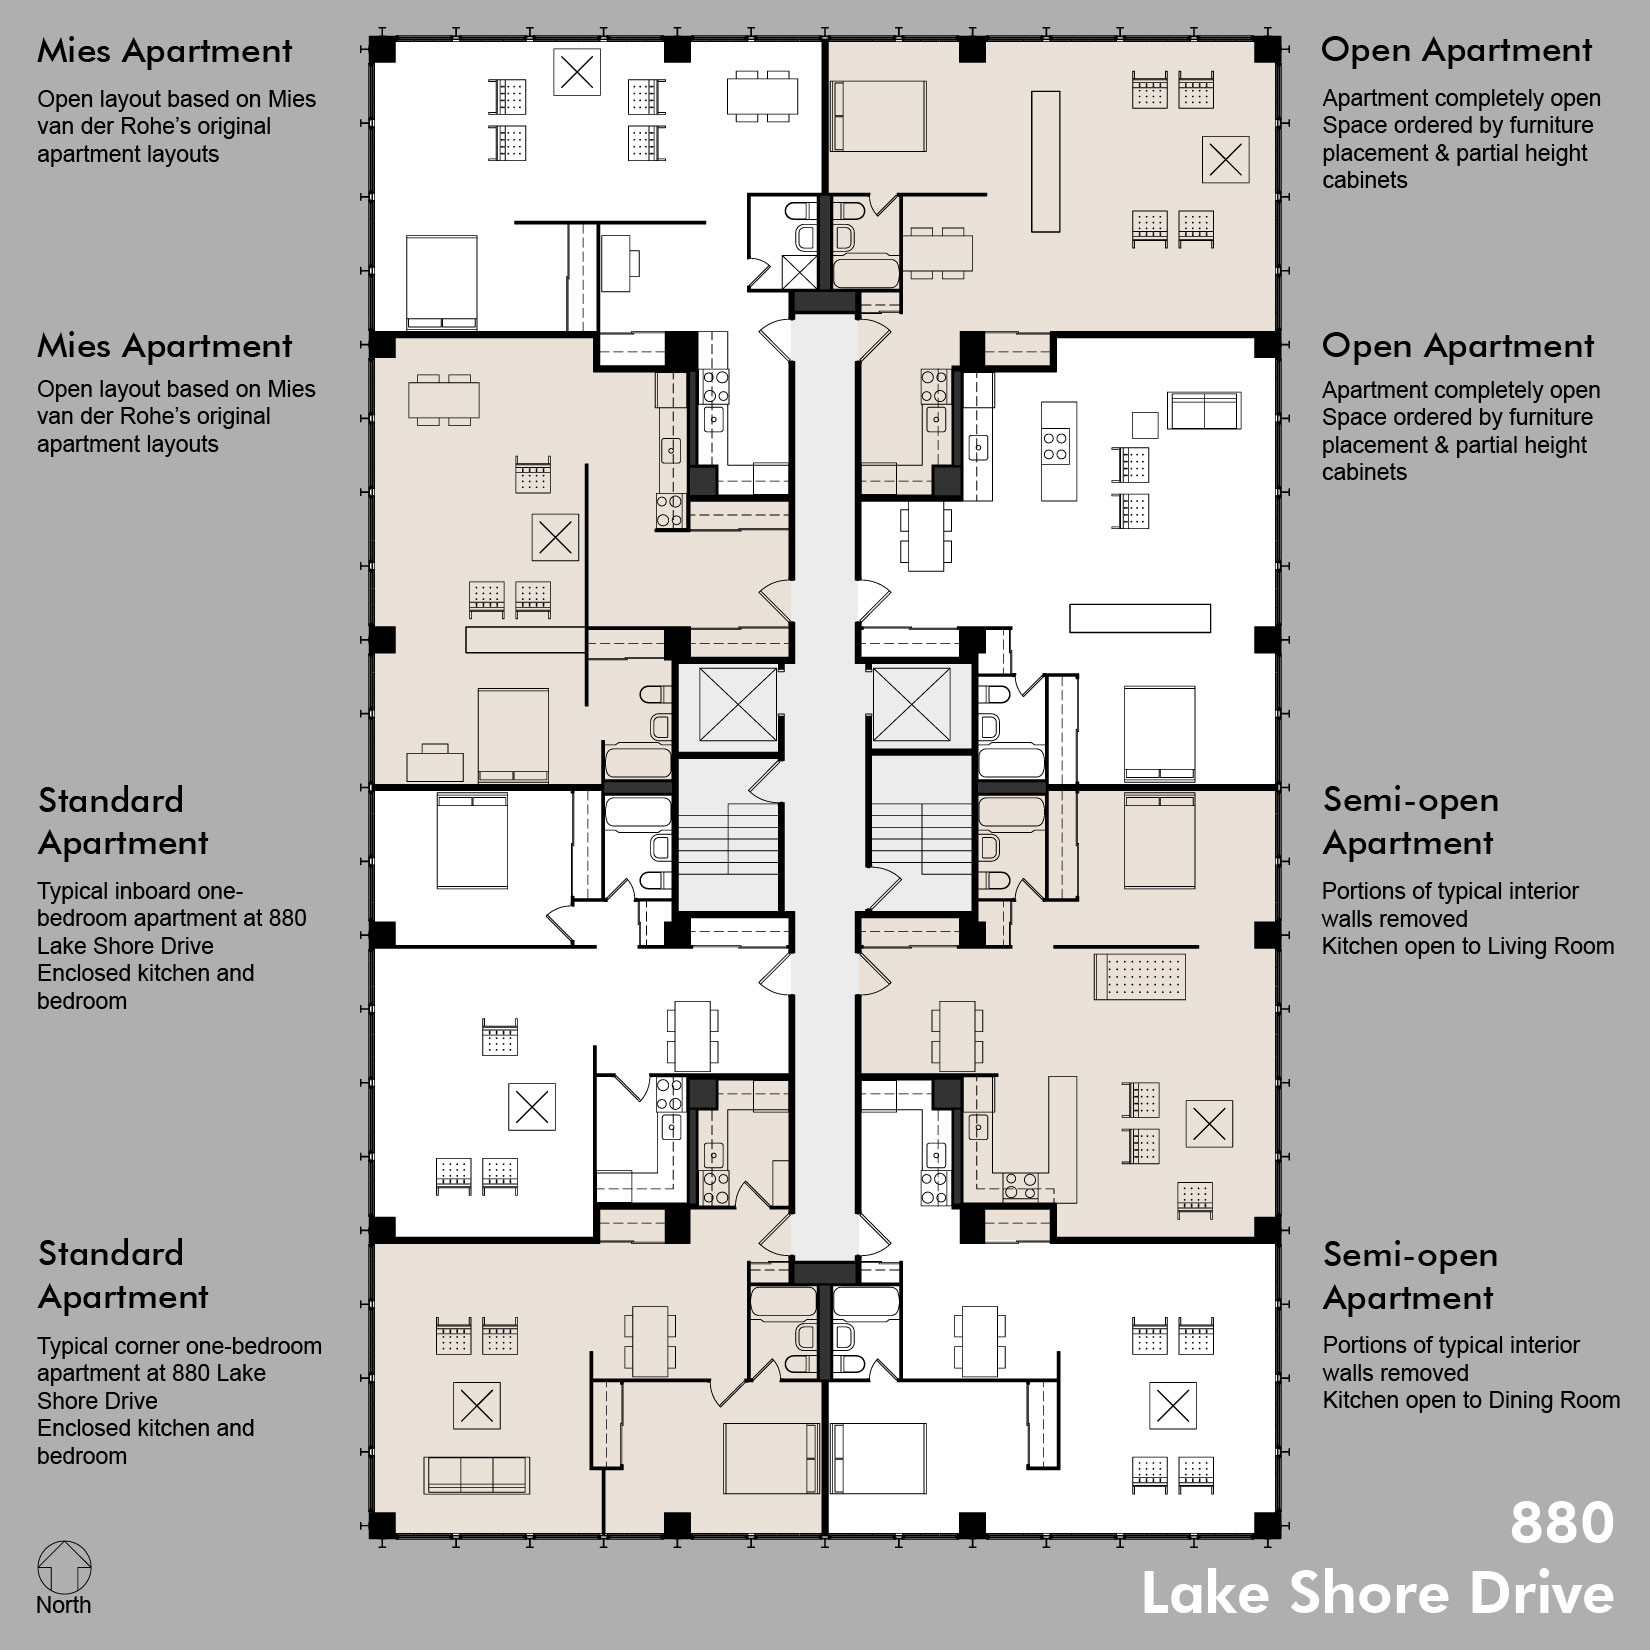 Floor Plans Including Standard Apt